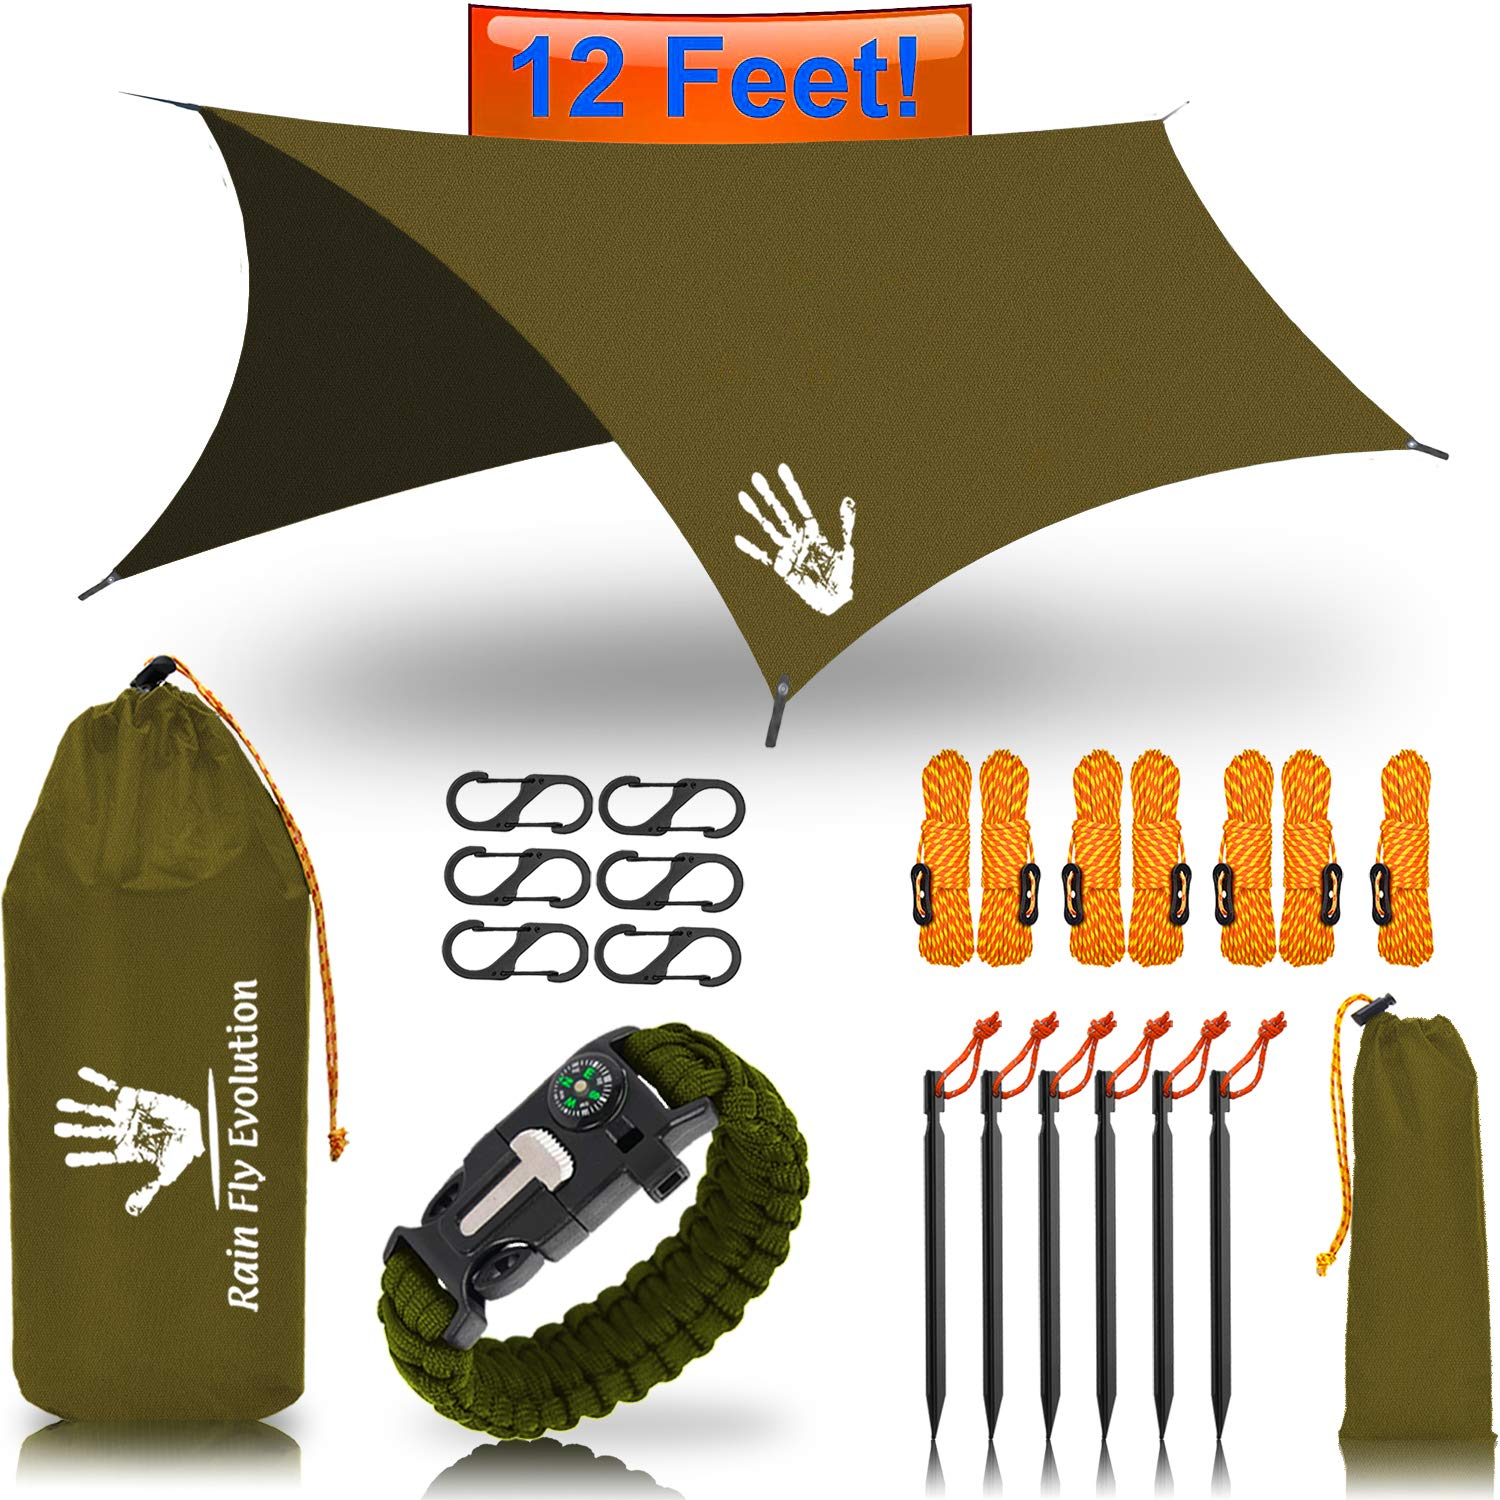 Best Choice Products Bug Net or Hammock RAIN Fly Tent TARP 12x10 / 10x10 ft & Survival Bracelet Gear - Waterproof Eno Rain Cover - Lightweight Diamond Ripstop Nylon Black 10x10 OD Green by Best Choice Products